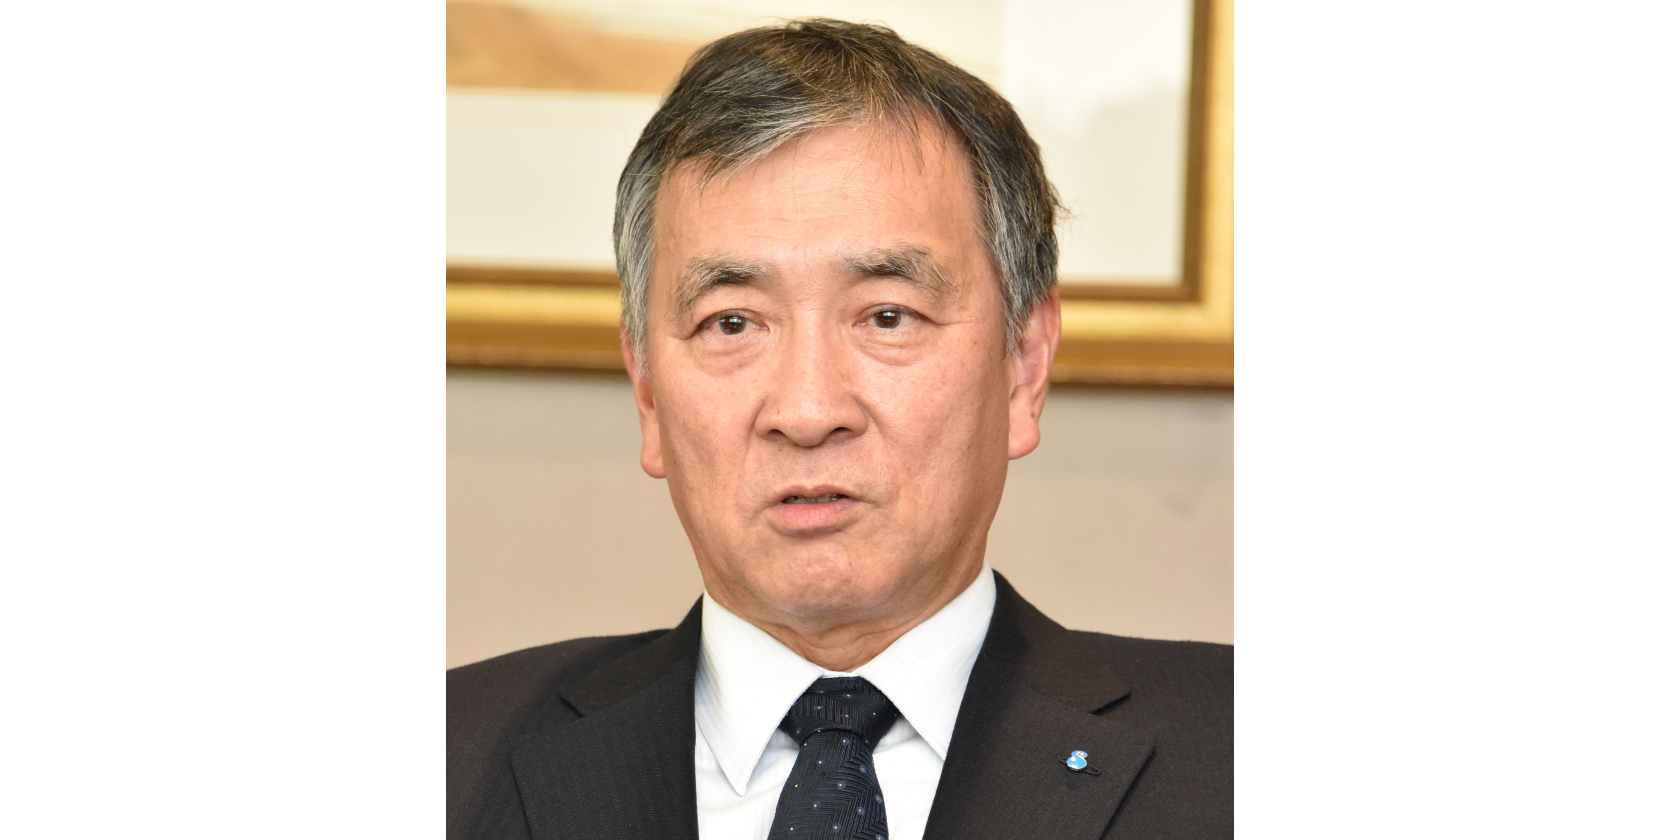 Interview: Showa Denko President Kohei Morikawa Talks Path Toward Achieving Upcoming Business Targets